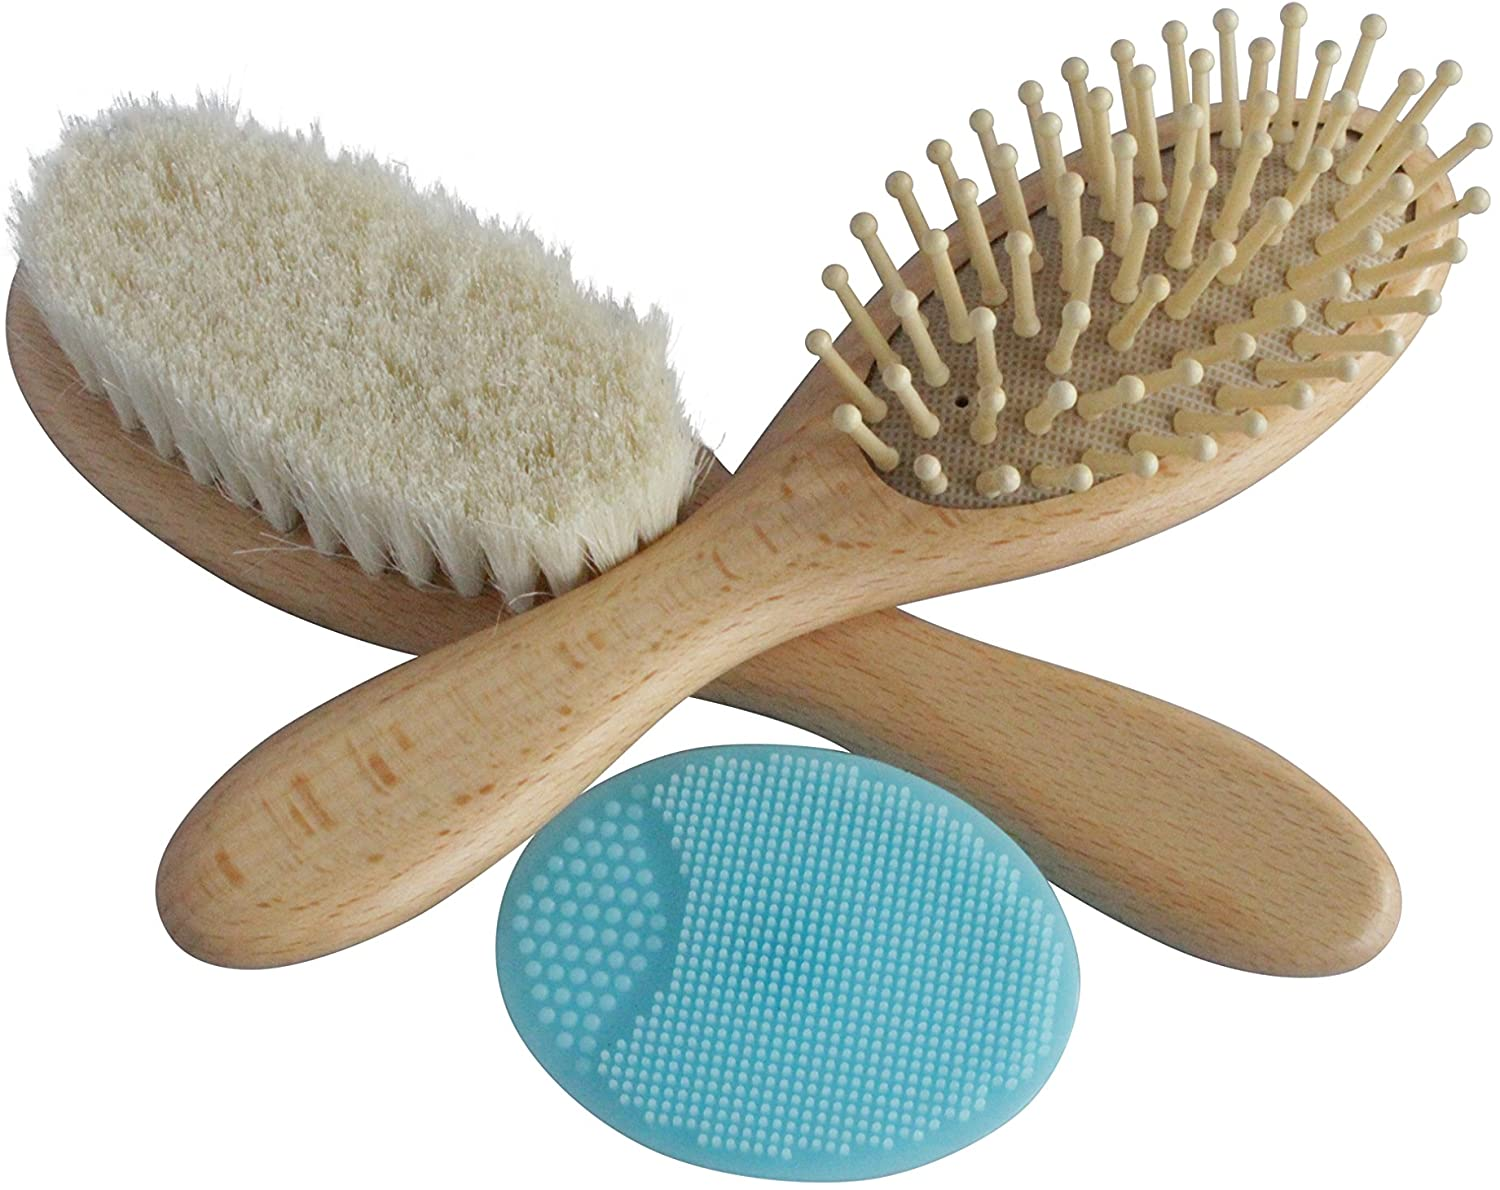 Wooden Best Baby Hair Brush Set with Natural Goat Hair Bristles